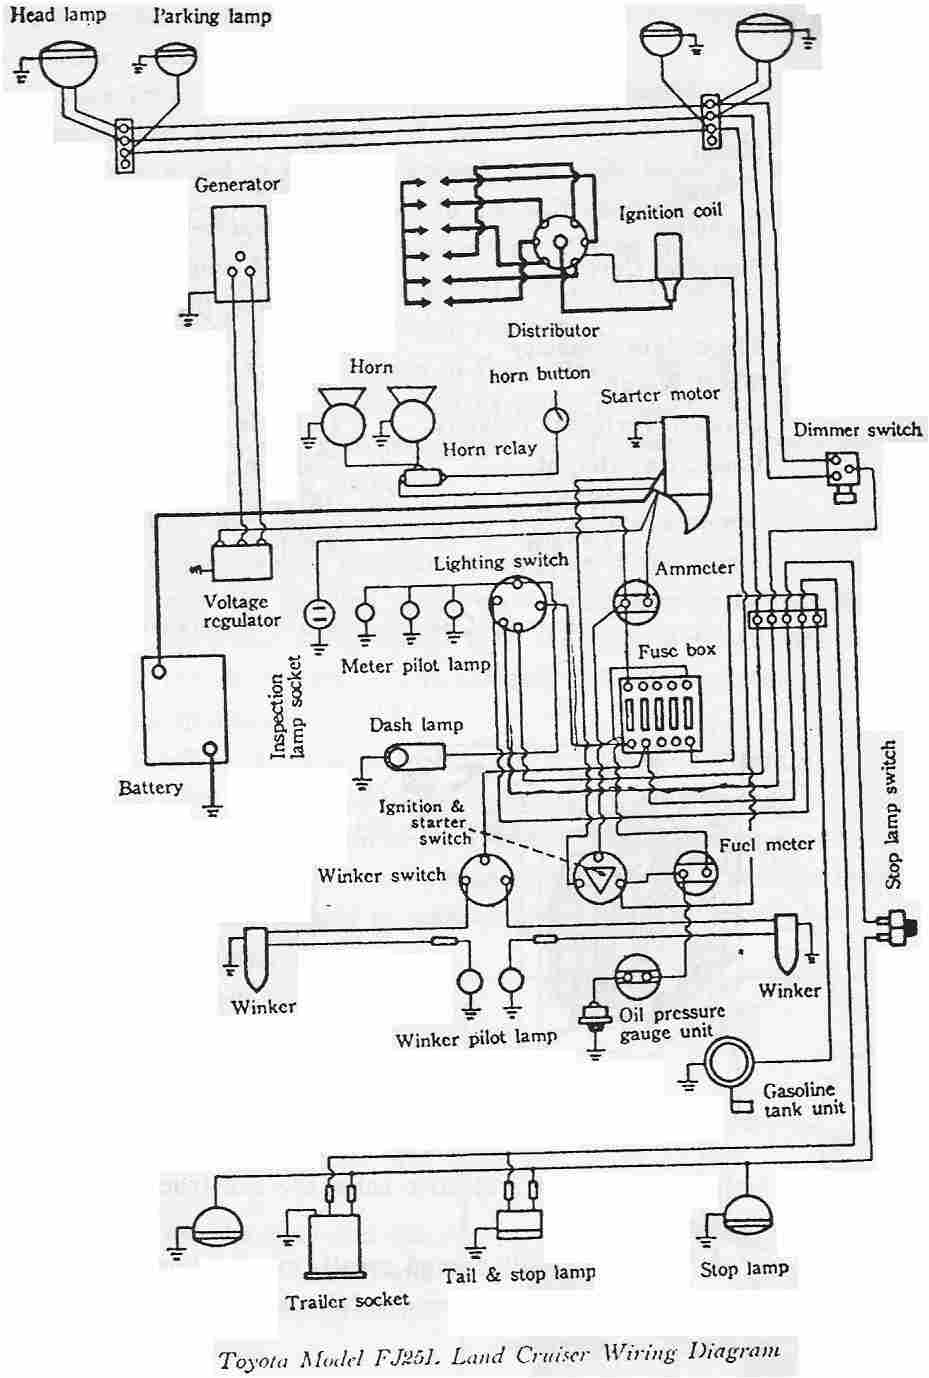 toro ignition switch wiring diagram toro discover your wiring ignition switch wiring diagram for a riding lawn mower